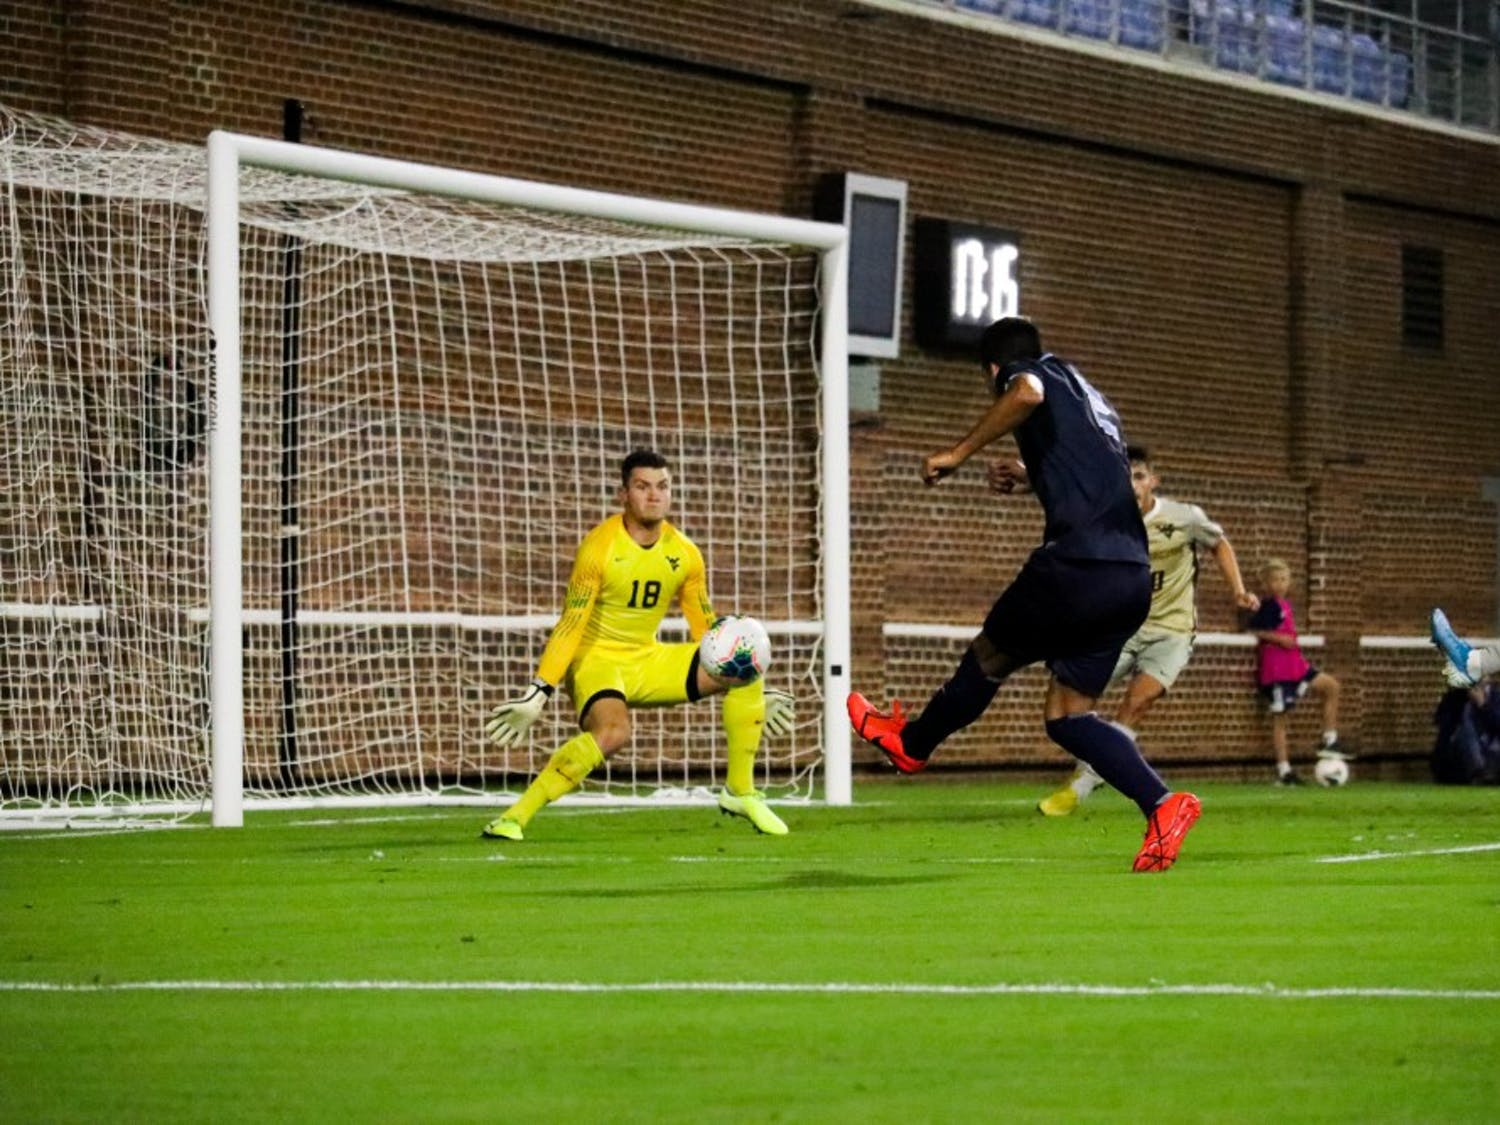 Senior midfielder Mauricio Pineda (2) scores a goal against WVU goalie Steven Tekesky (18) in the first half during the team's 3-1 victory over West Virginia on Tuesday, Oct. 8, 2019. Pineda scored two goals during the win.